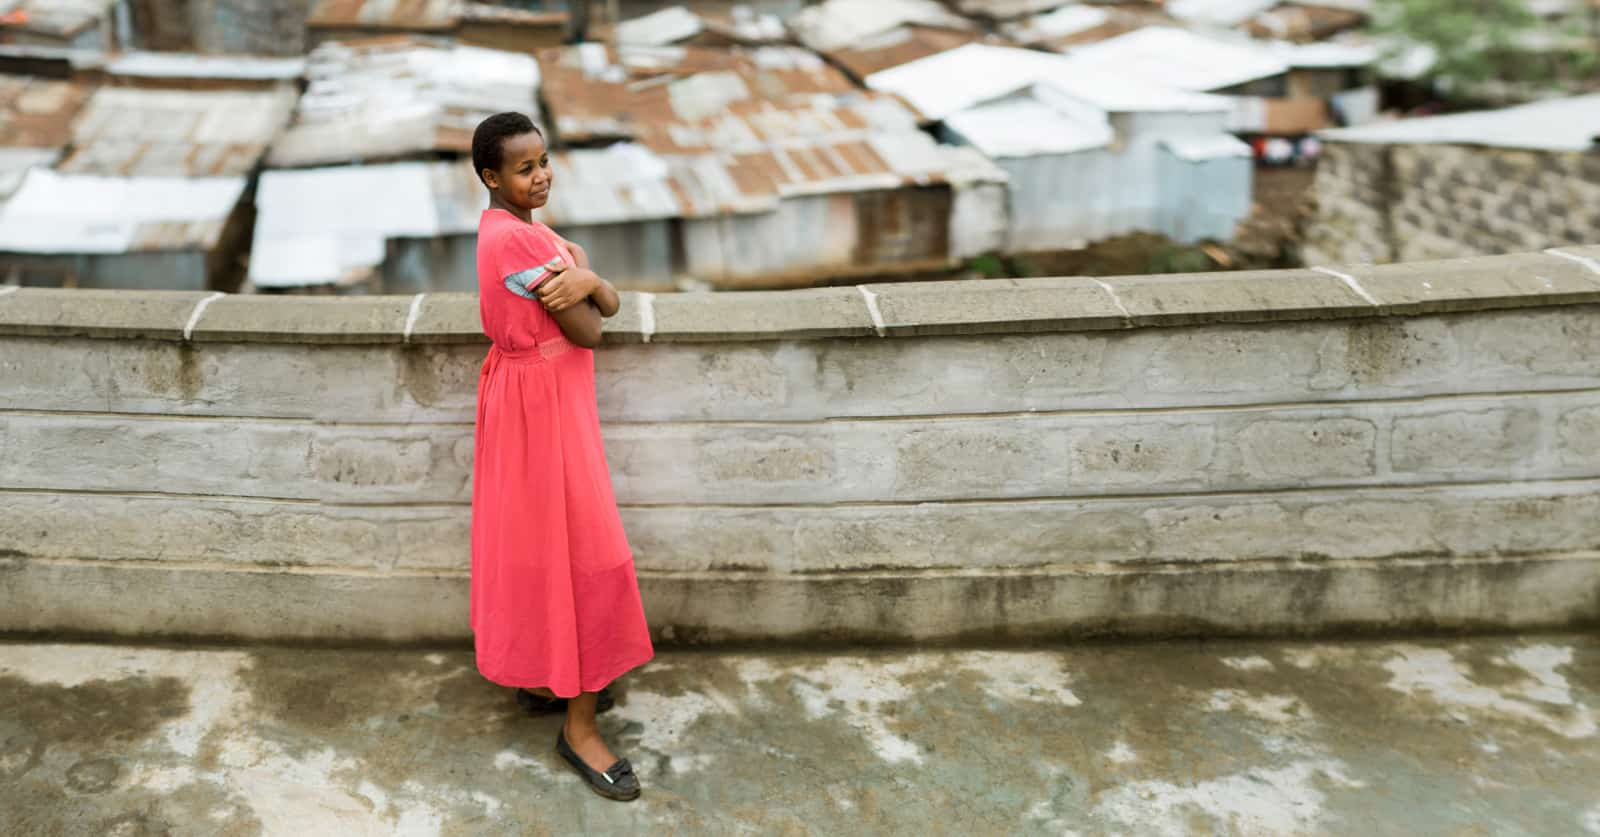 A teenage girl in a pink dress